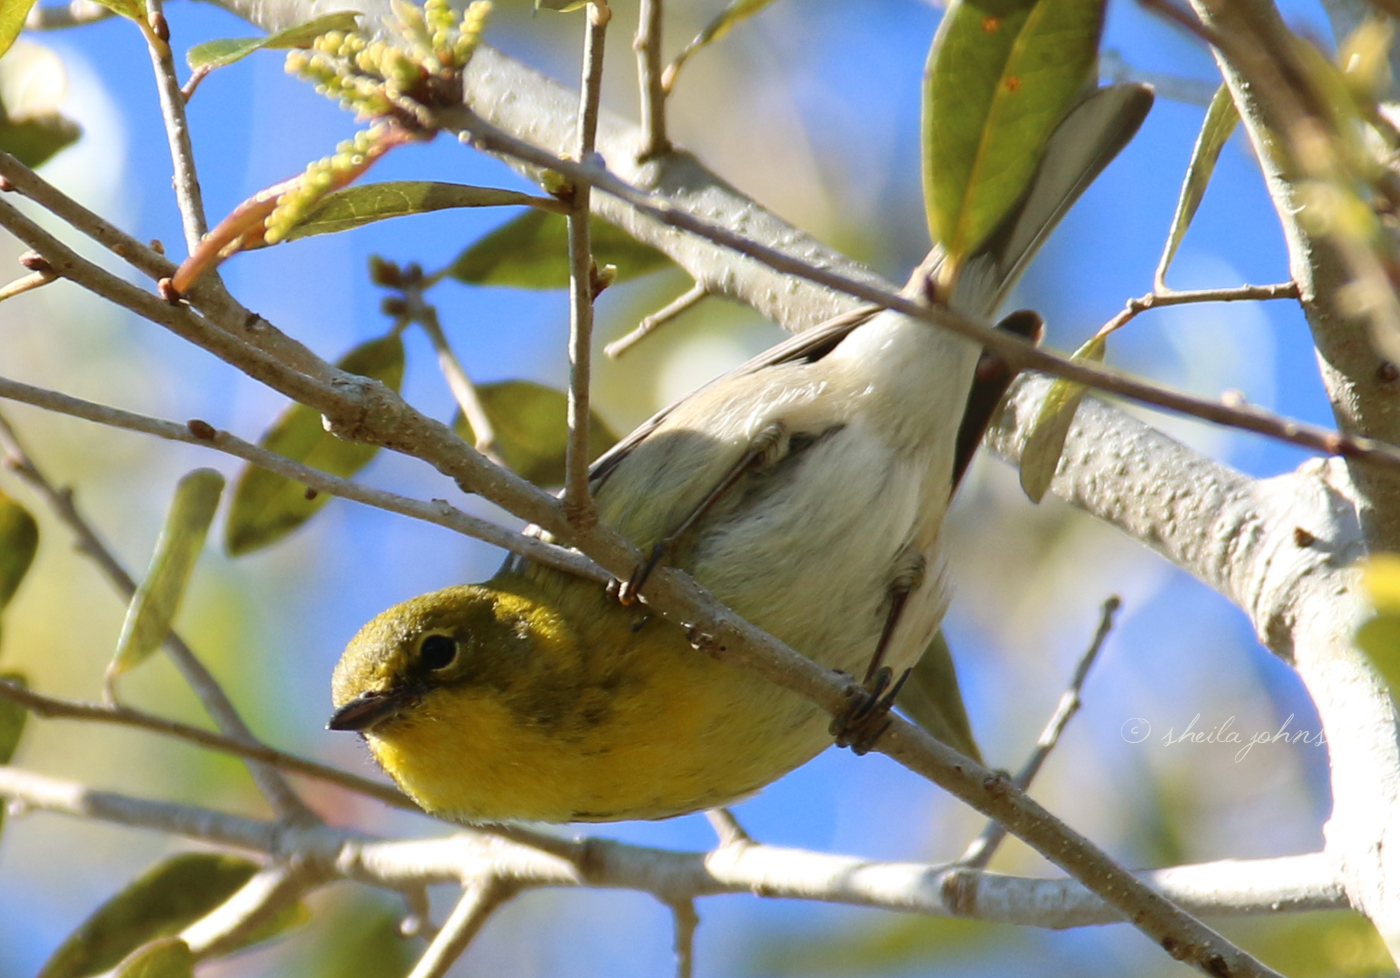 A Florida Winter Visitor, This Yellow-Throated Vireo Sits Still For Just An Instant -- That's Long Enough To Capture The Shot!